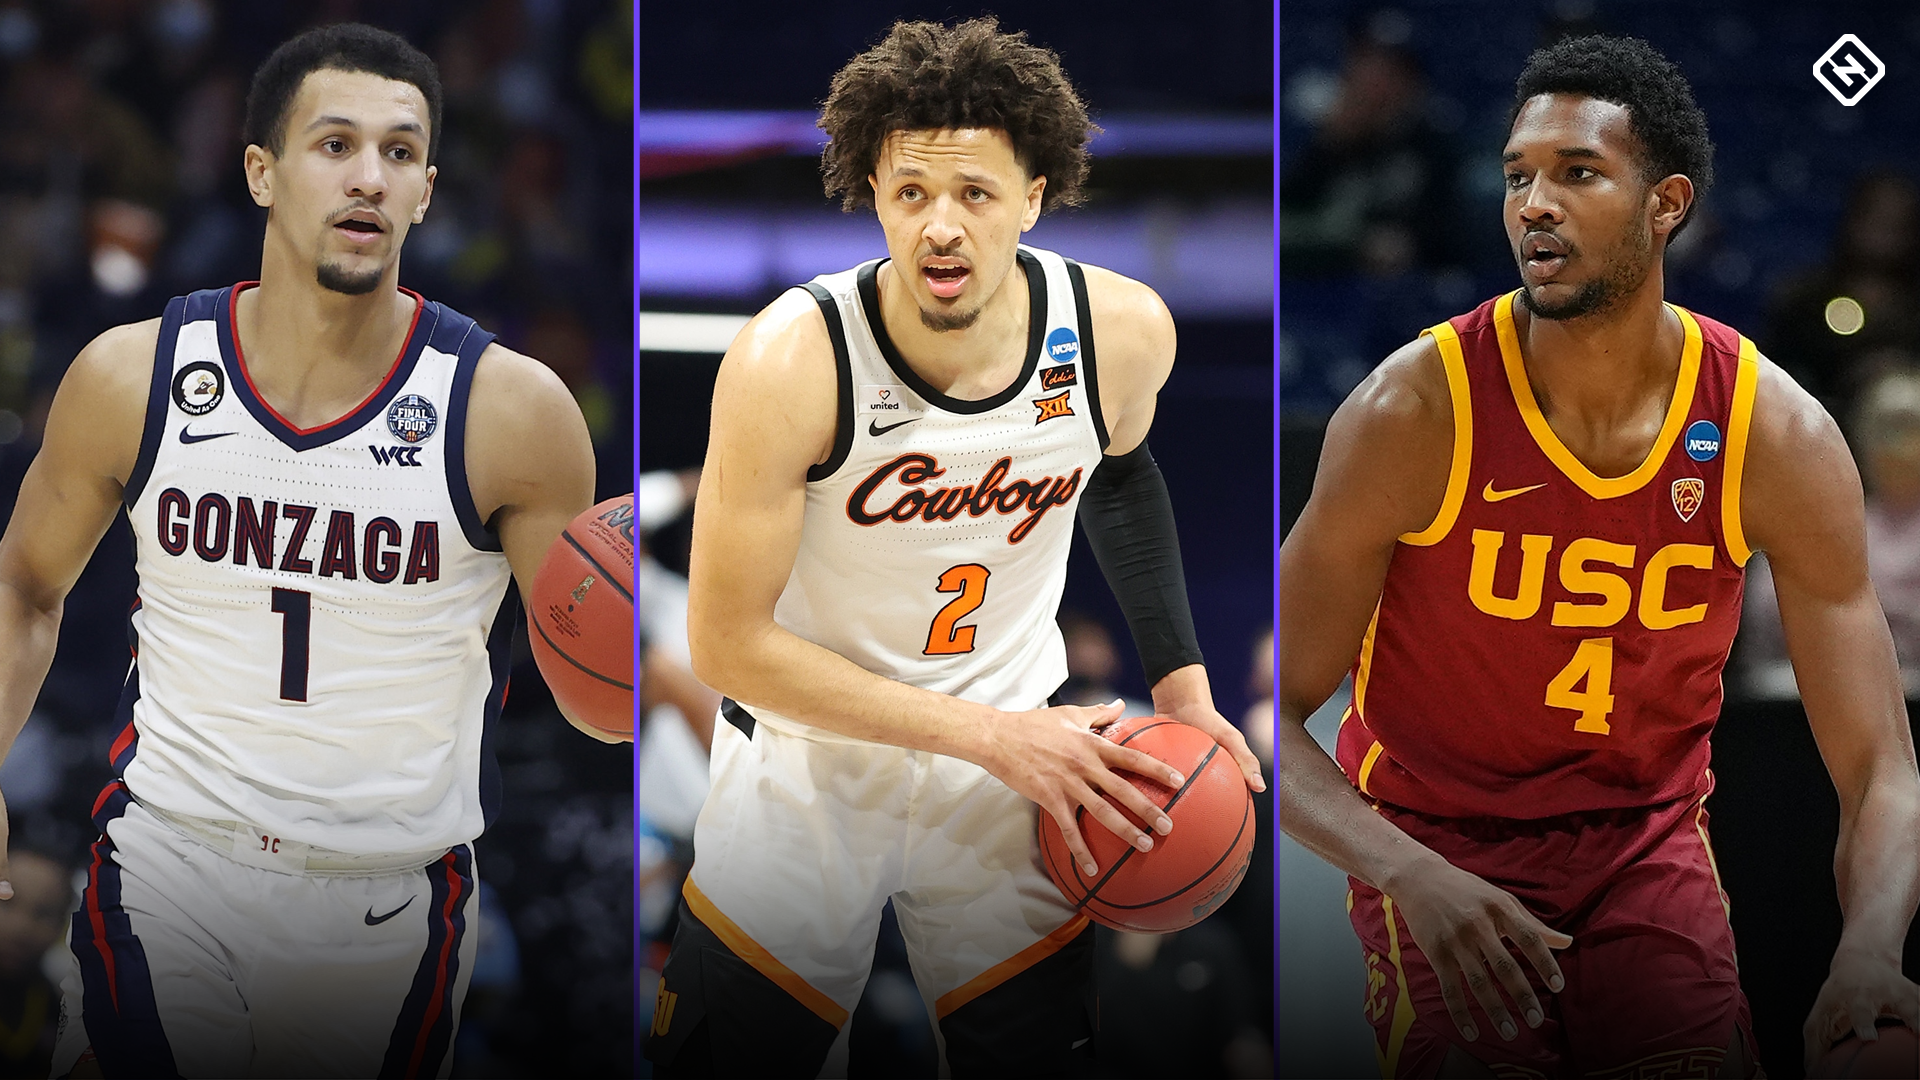 What To Look For In The 2021 NBA Draft